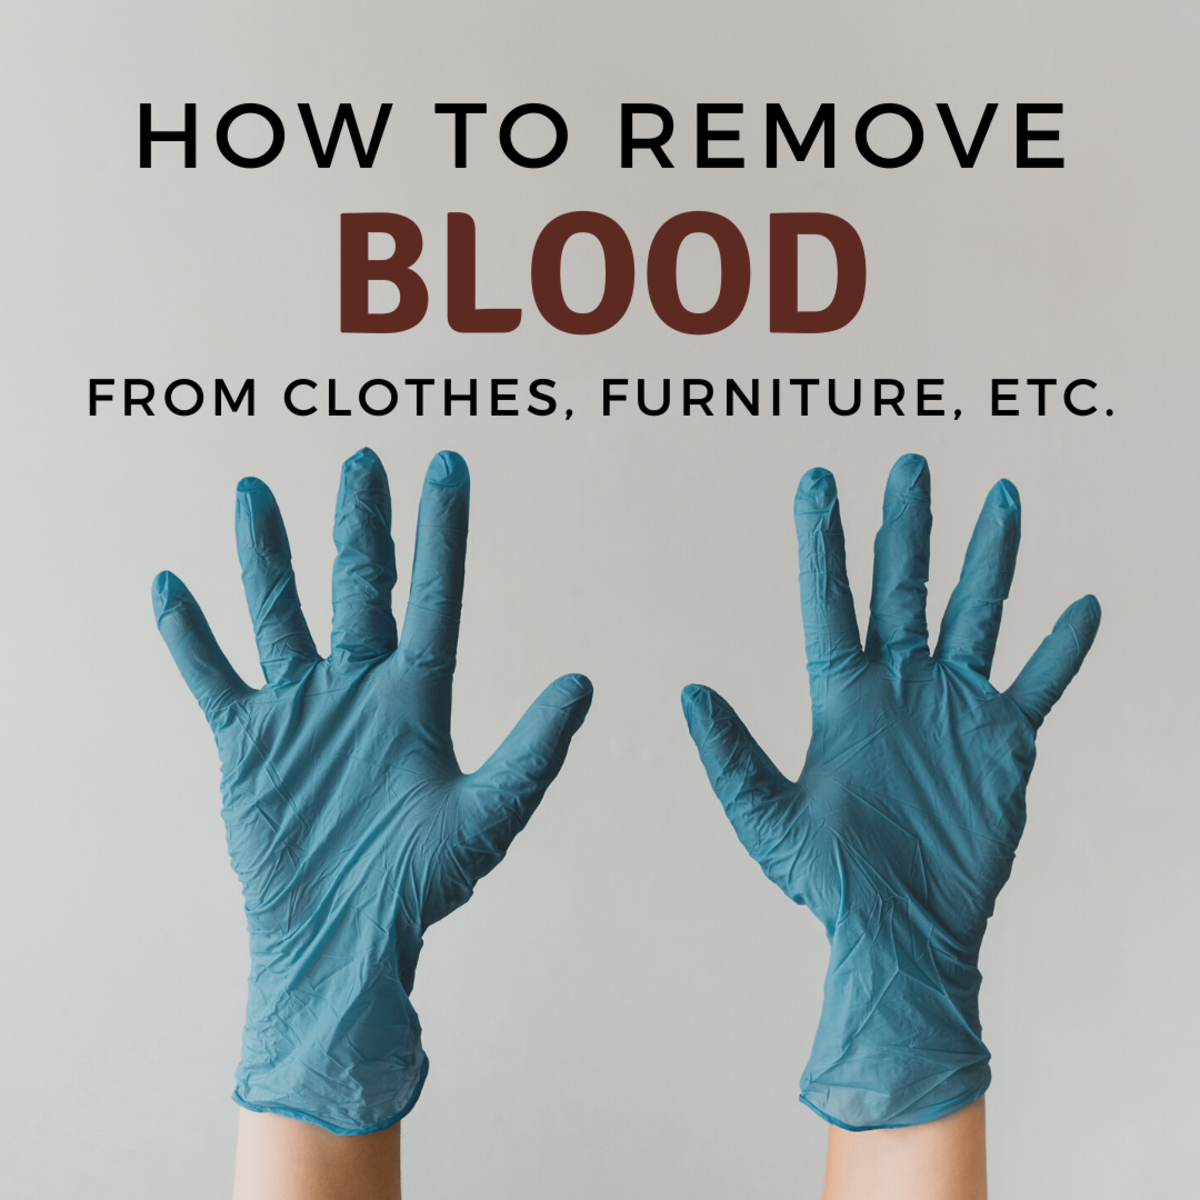 How to Remove Blood From Fabric